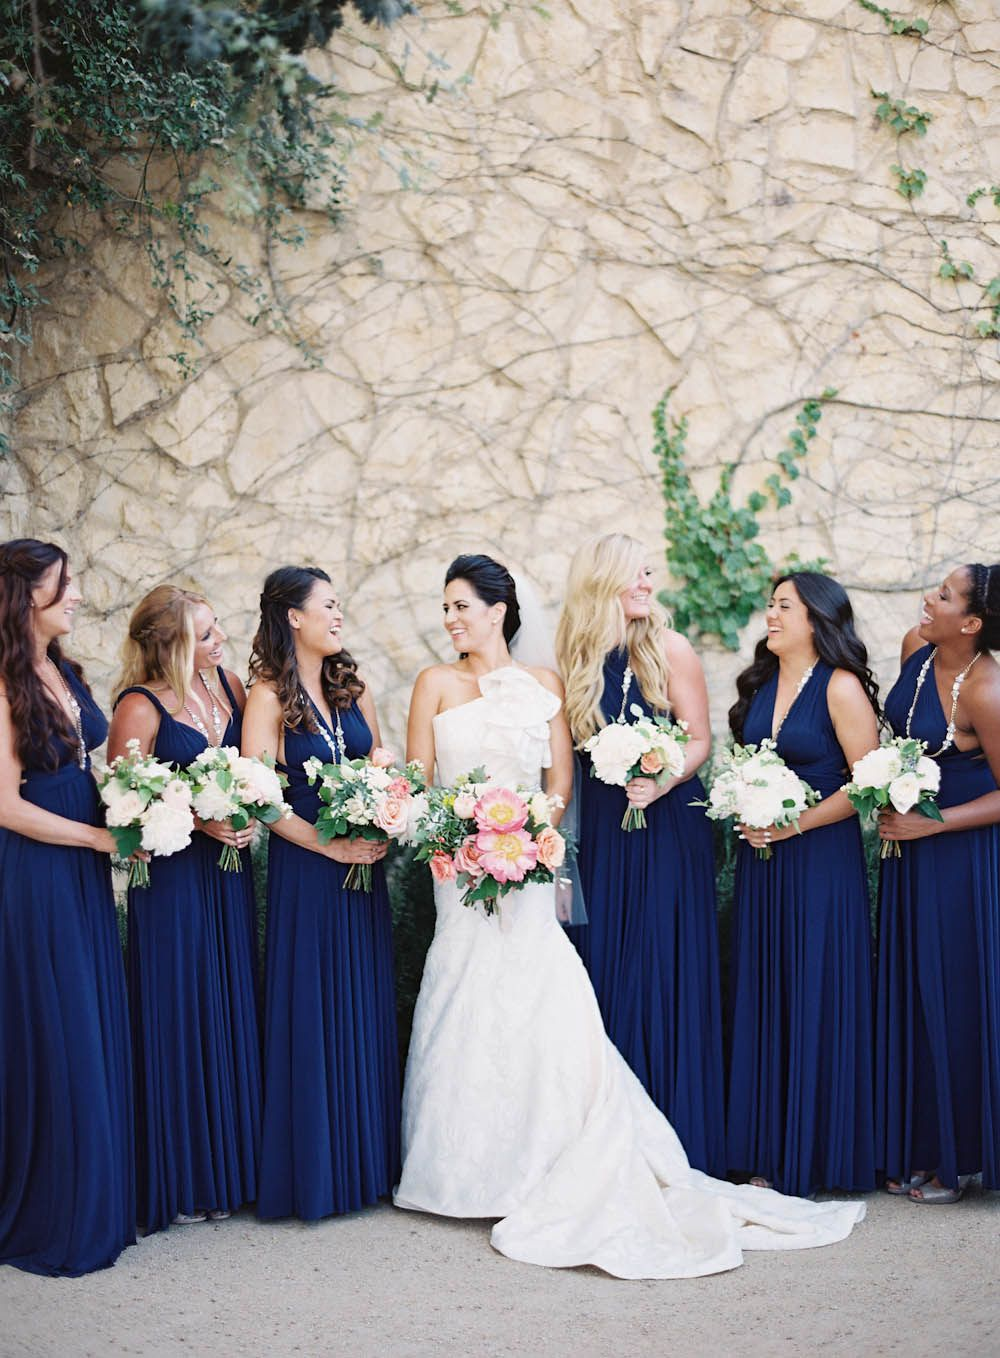 Photography: Jen Huang Photography - jenhuangphotography.com  Read More: http://www.stylemepretty.com/2014/09/08/modern-tuscan-inspired-wedding-with-pops-of-color/